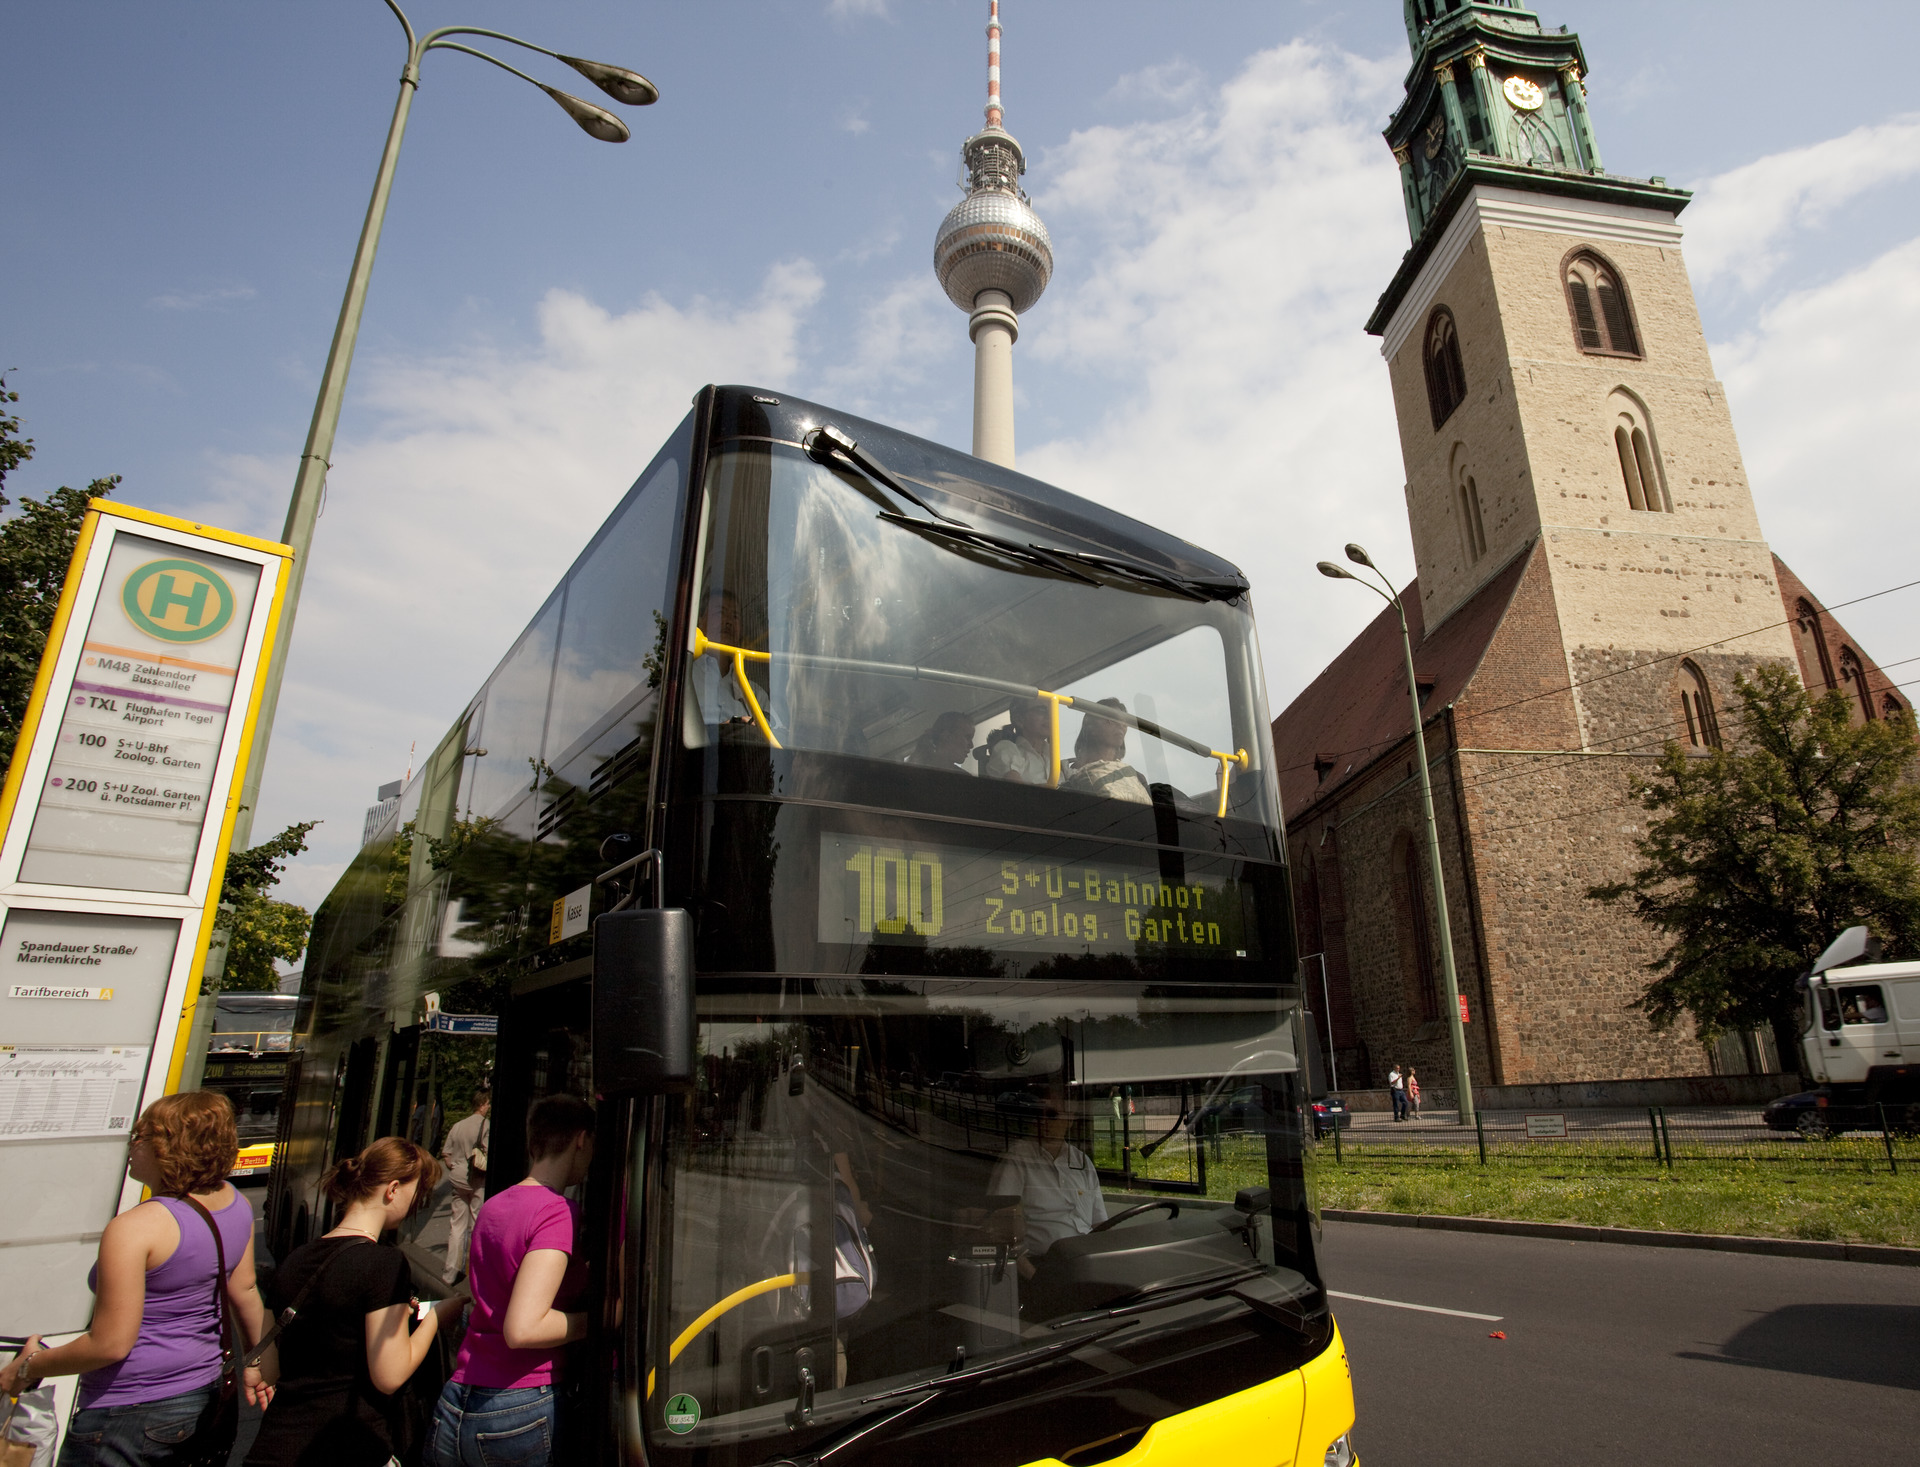 Explore Berlin by bus 100